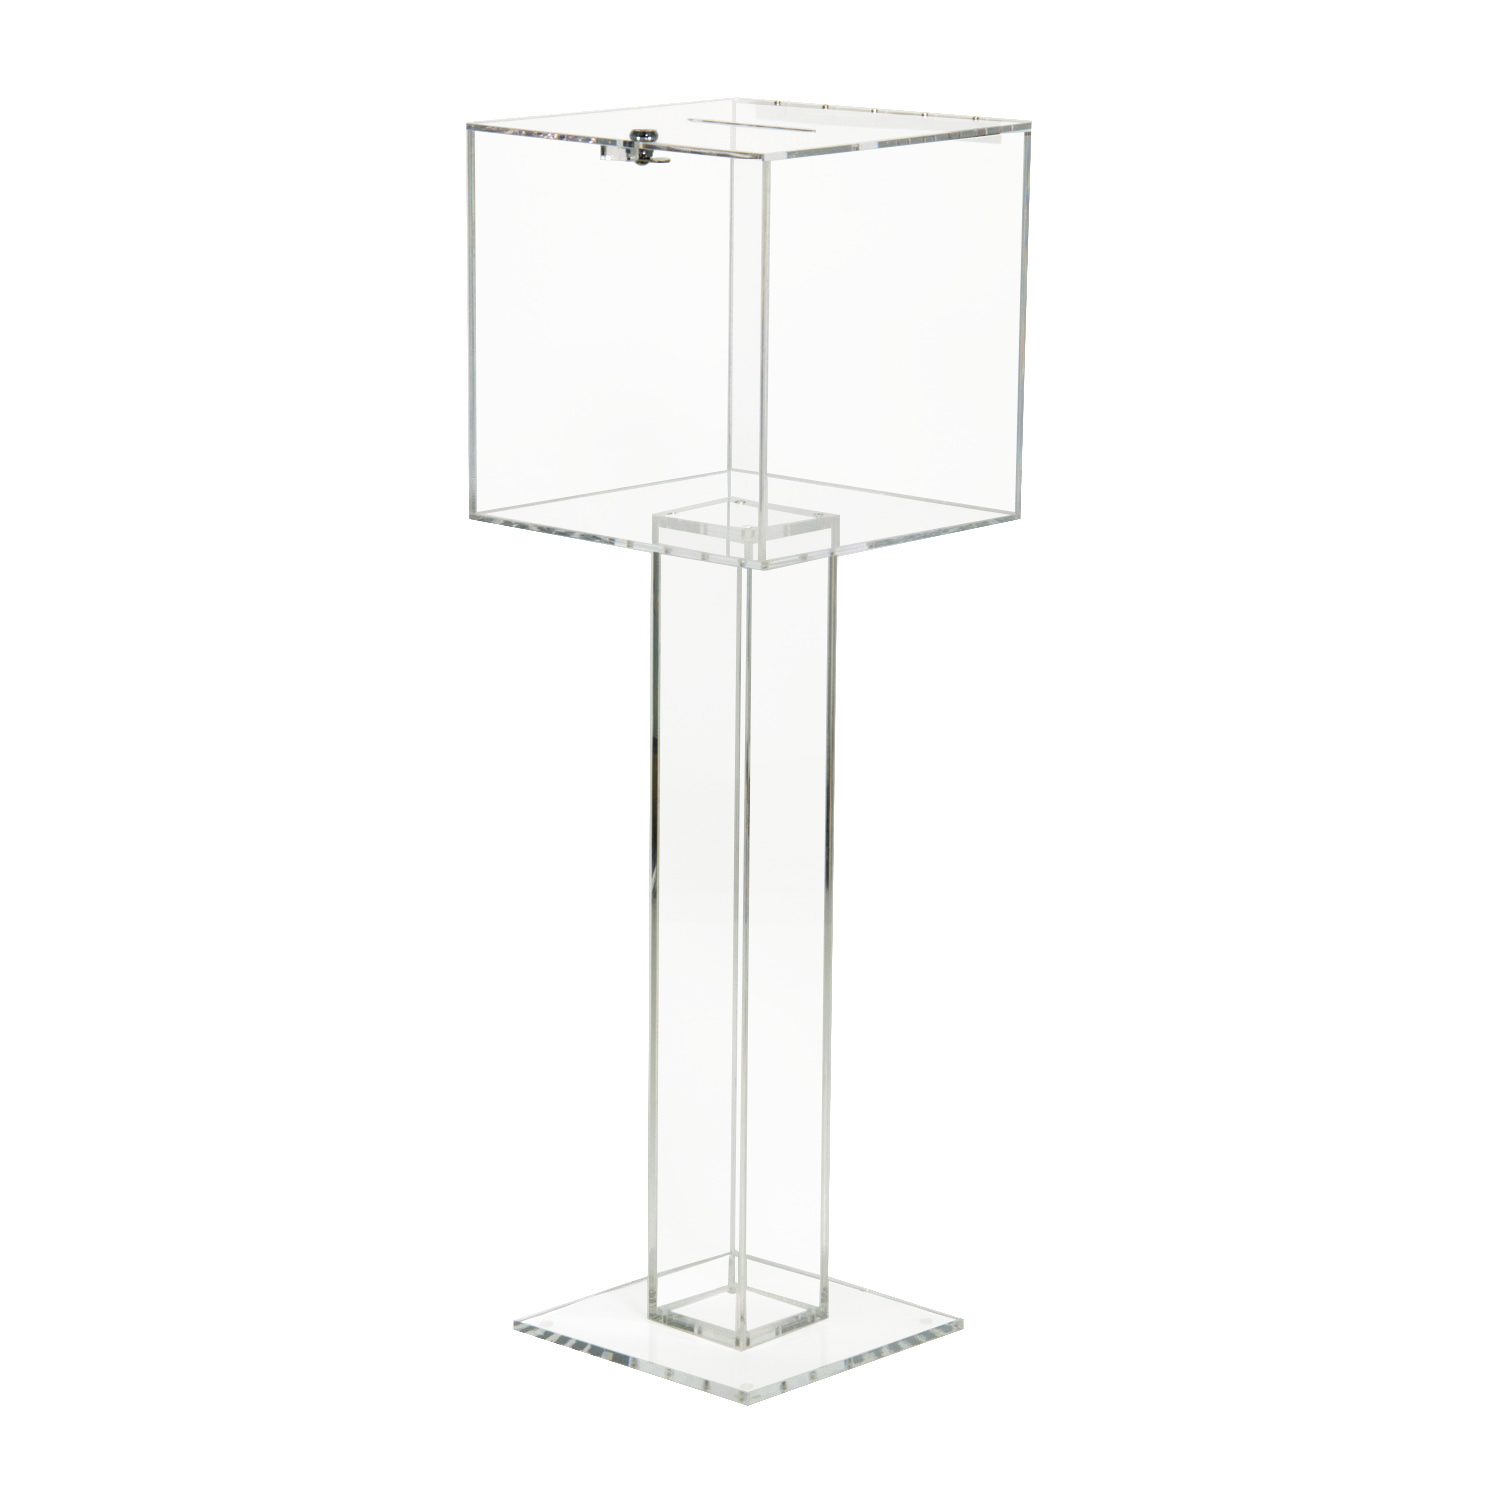 Floor Standing Pedestal Ballot Box Buy Acrylic Displays